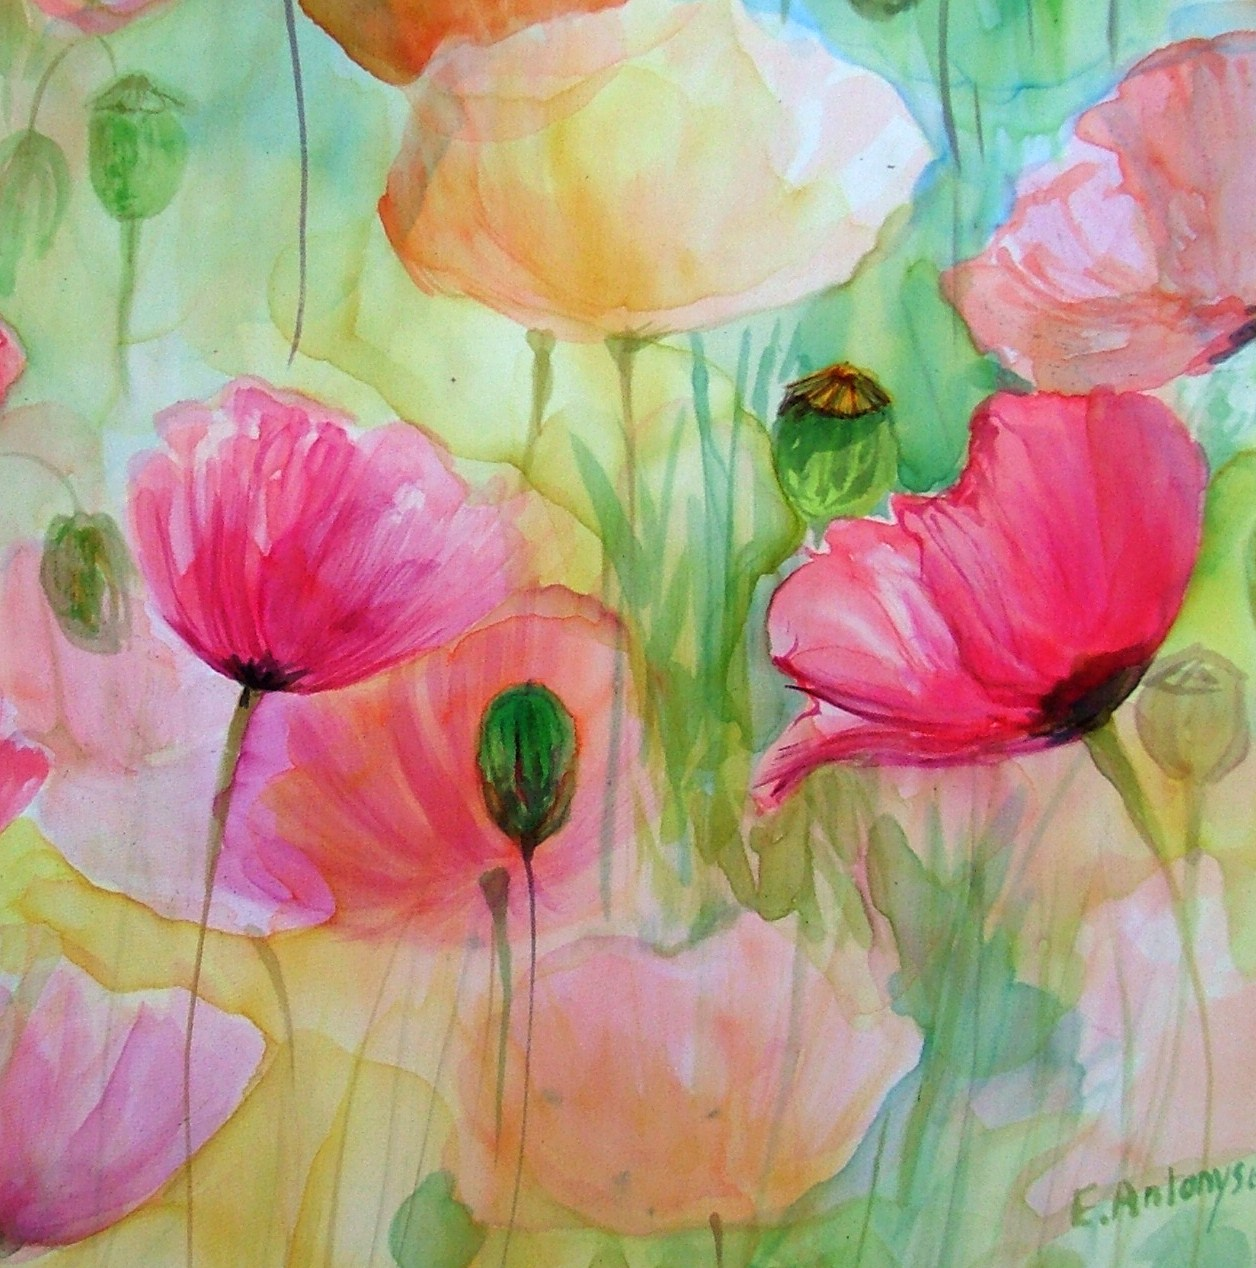 Free Spirits.... poppies are my favourite flower to paint on silk. Watercolour technique, allowing free movement of dyes but careful brush selection.